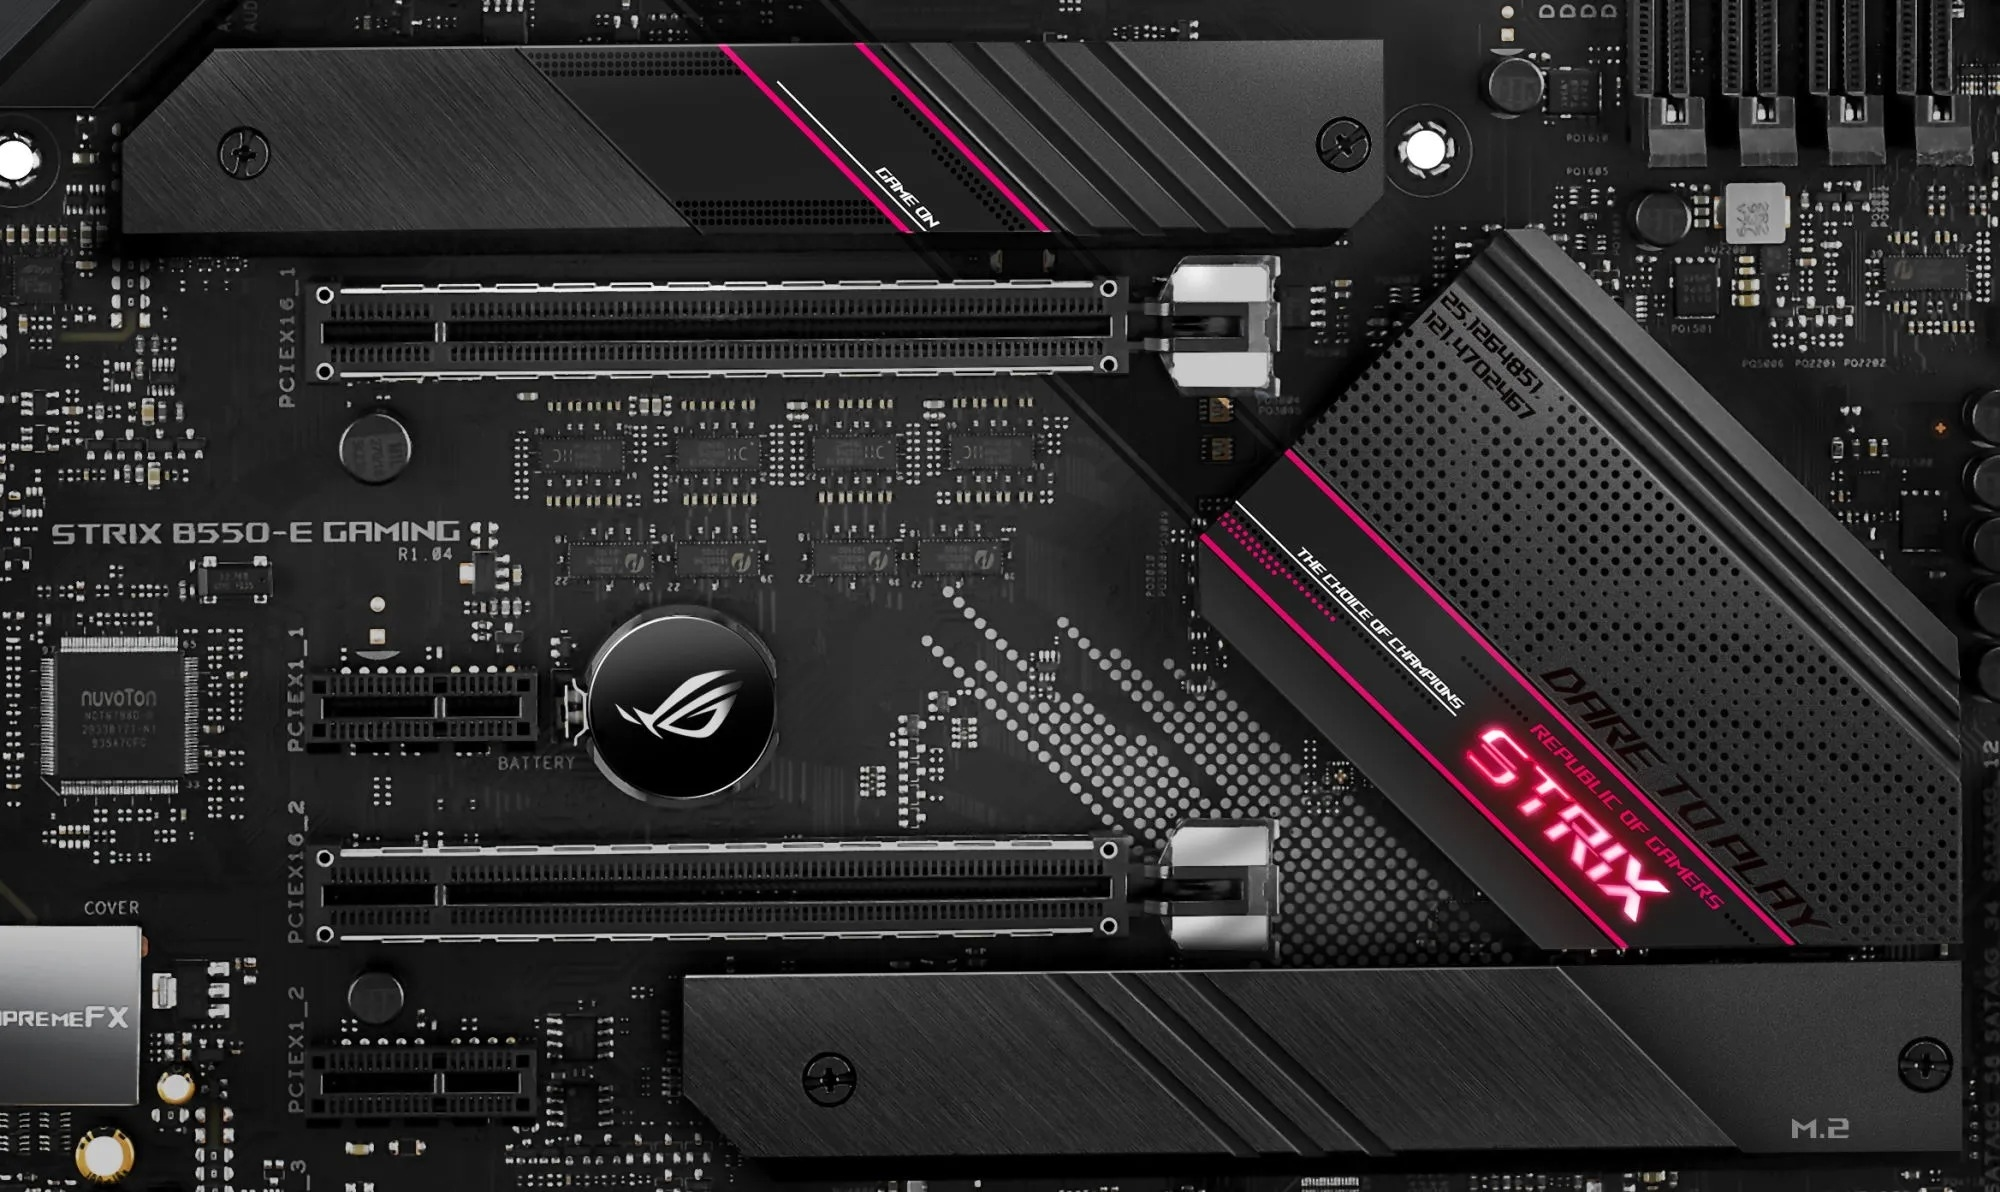 ROG Strix B550 motherboards power up mainstream AMD gaming builds with PCI Express 4.0